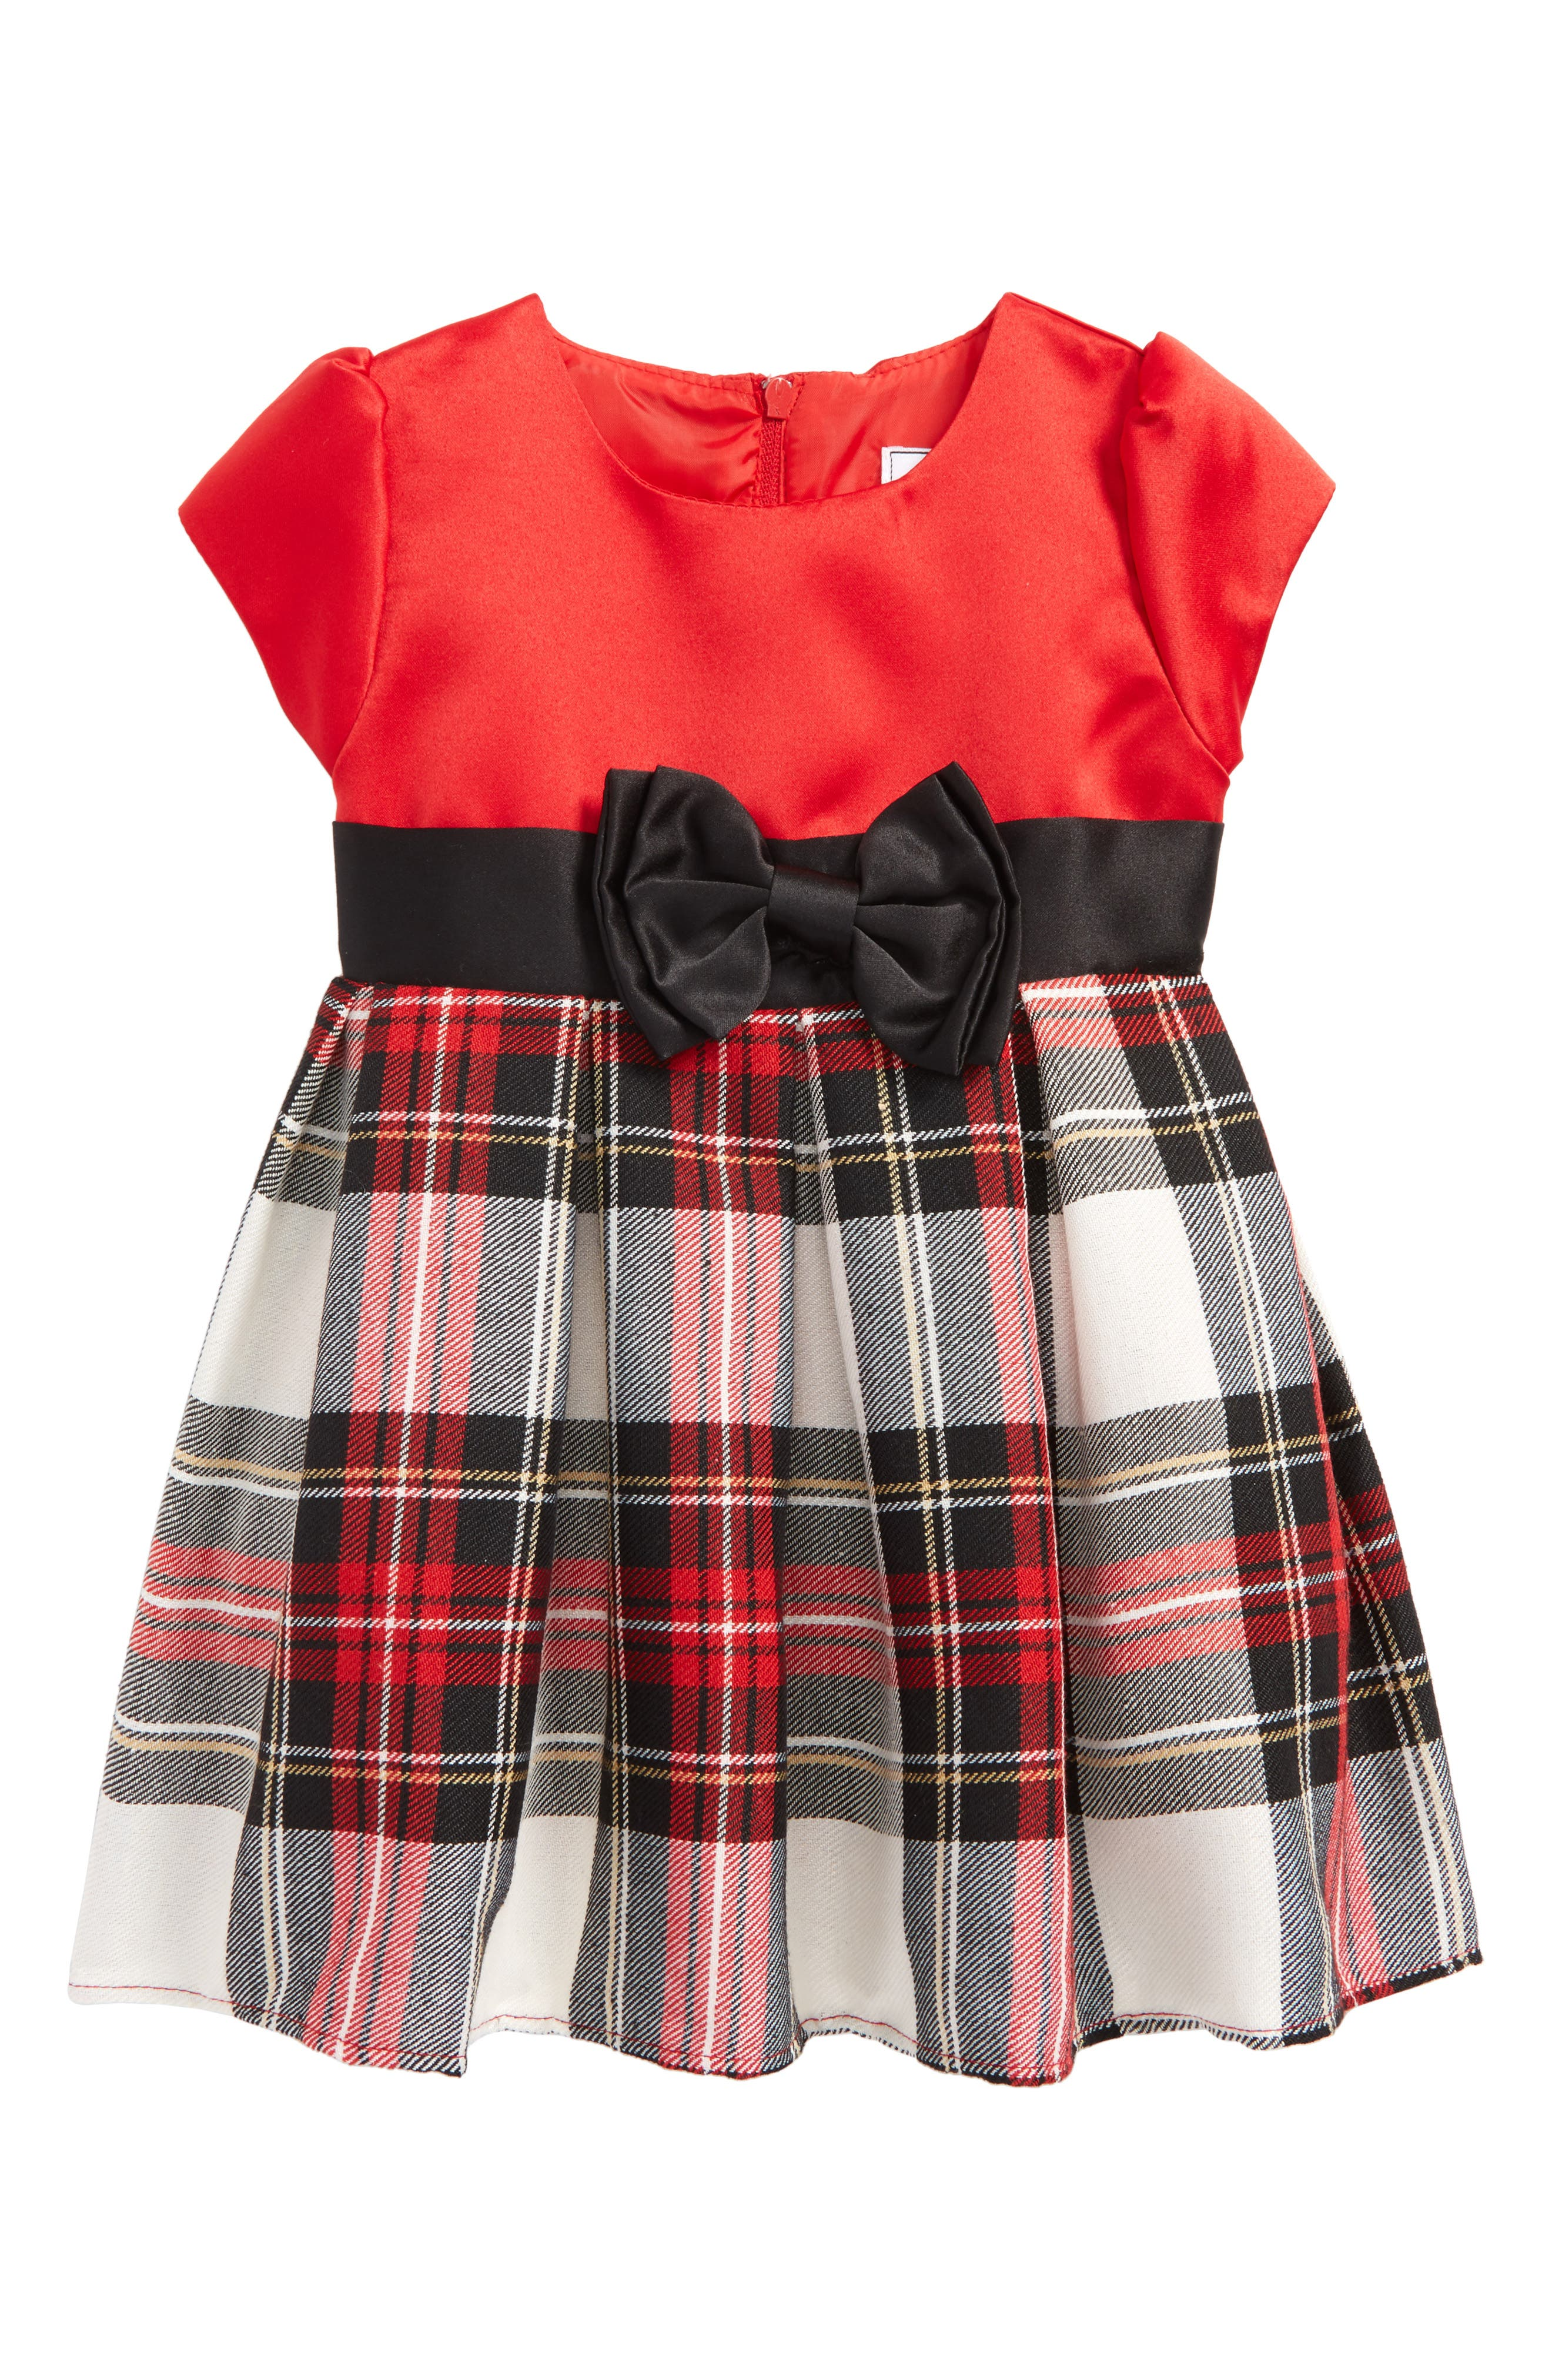 Dorissa Angie Satin Tartan Dress (Baby Girls)